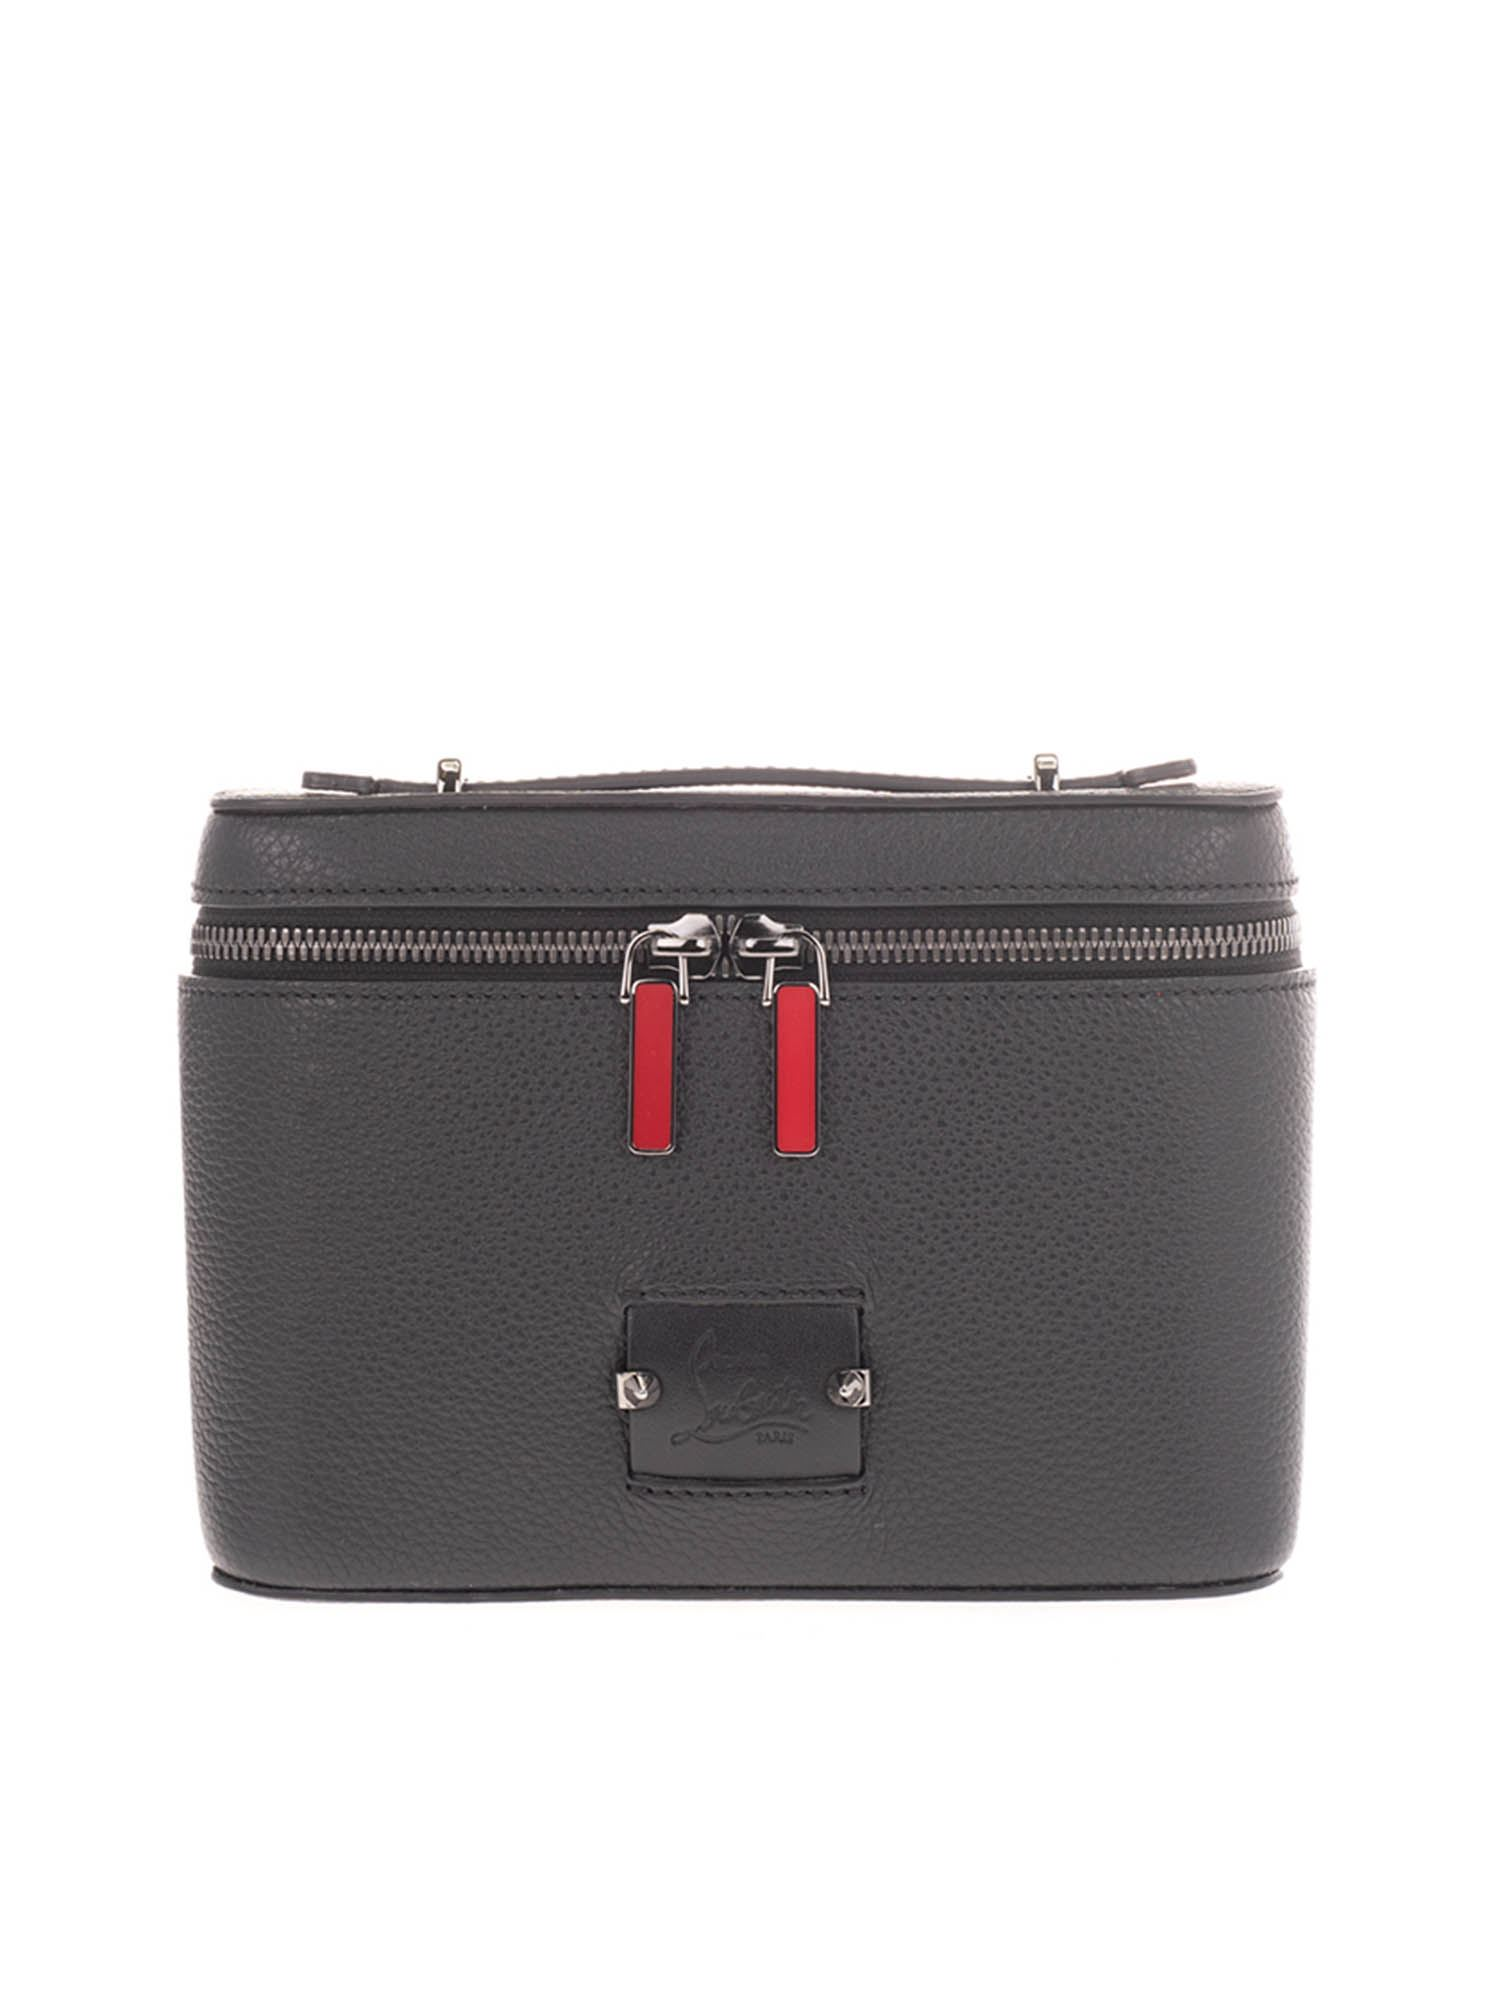 Christian Louboutin KYPIPOUCH SMALL BAG IN BLACK